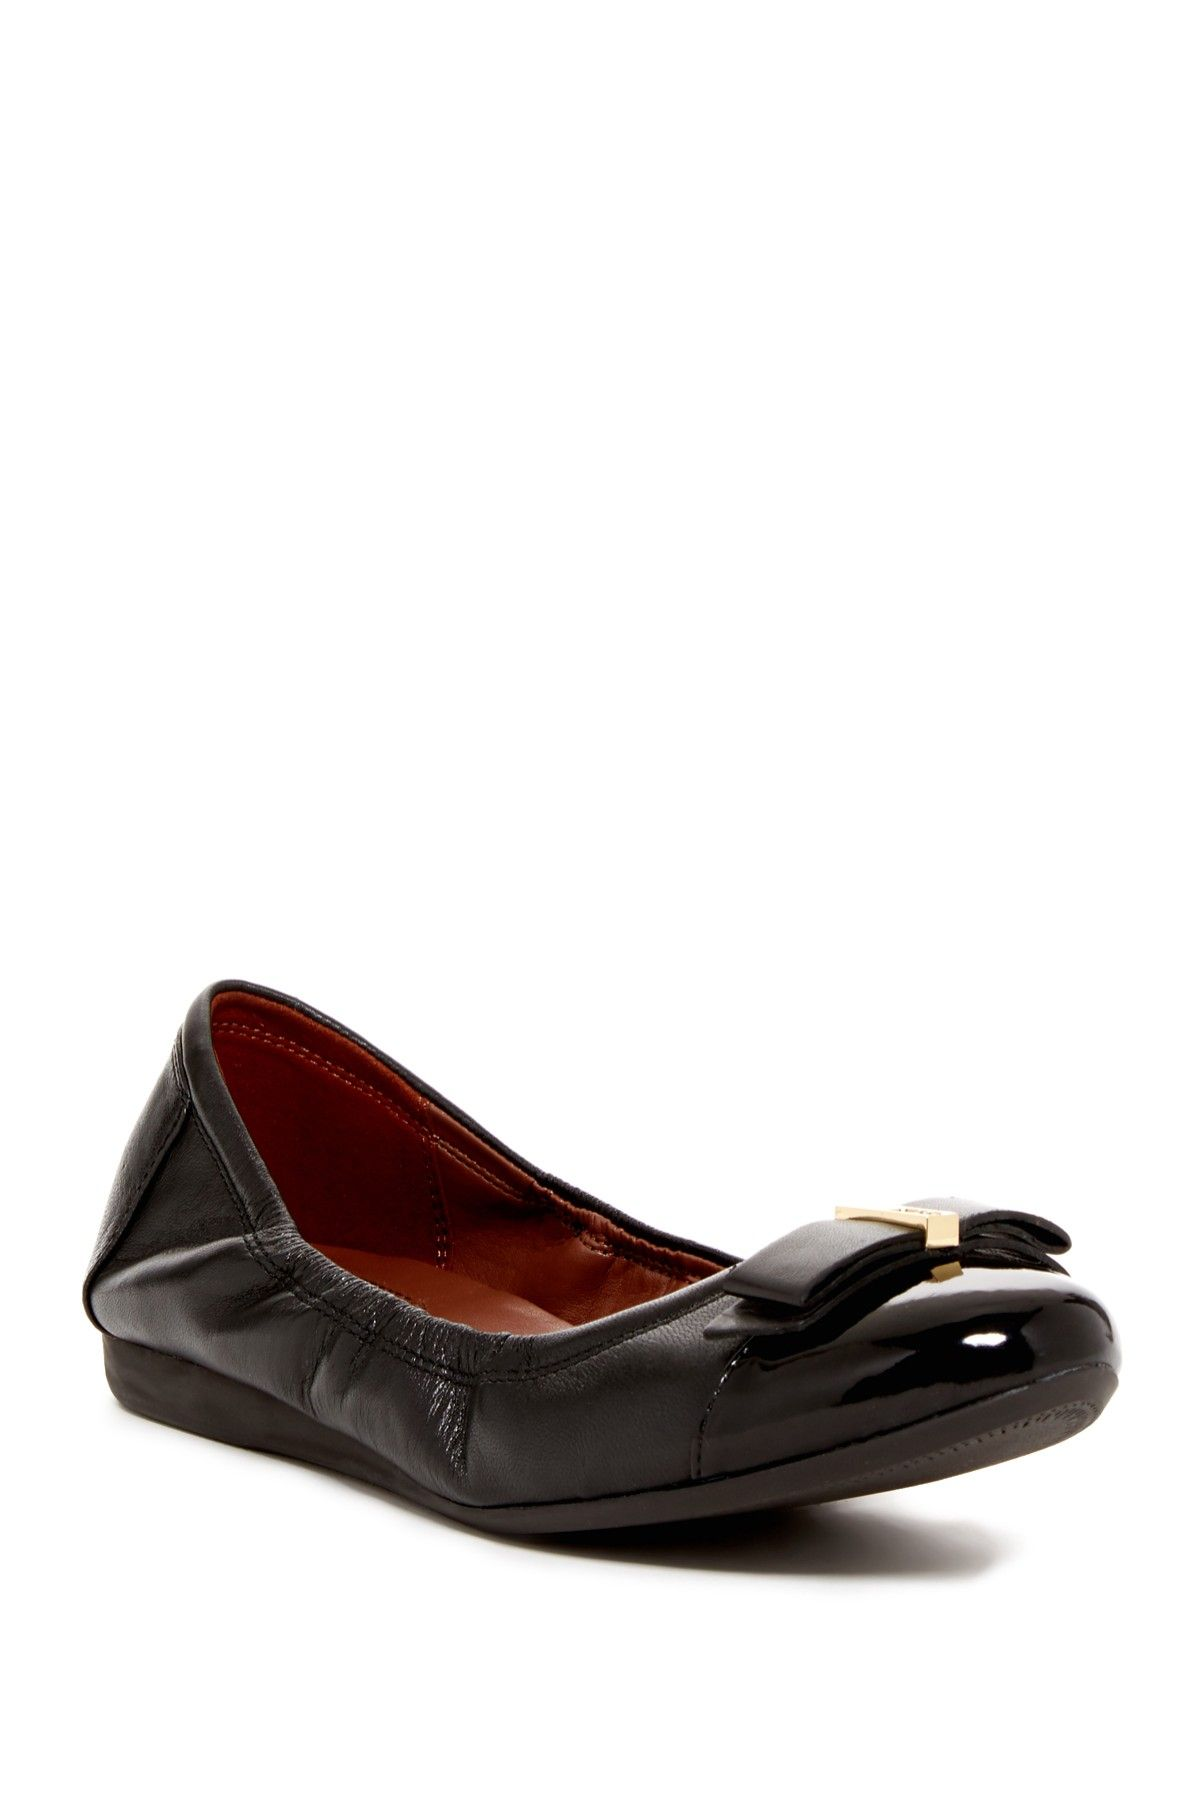 9e045535b43e Elsie Ballet Flat II by Cole Haan on  nordstrom rack